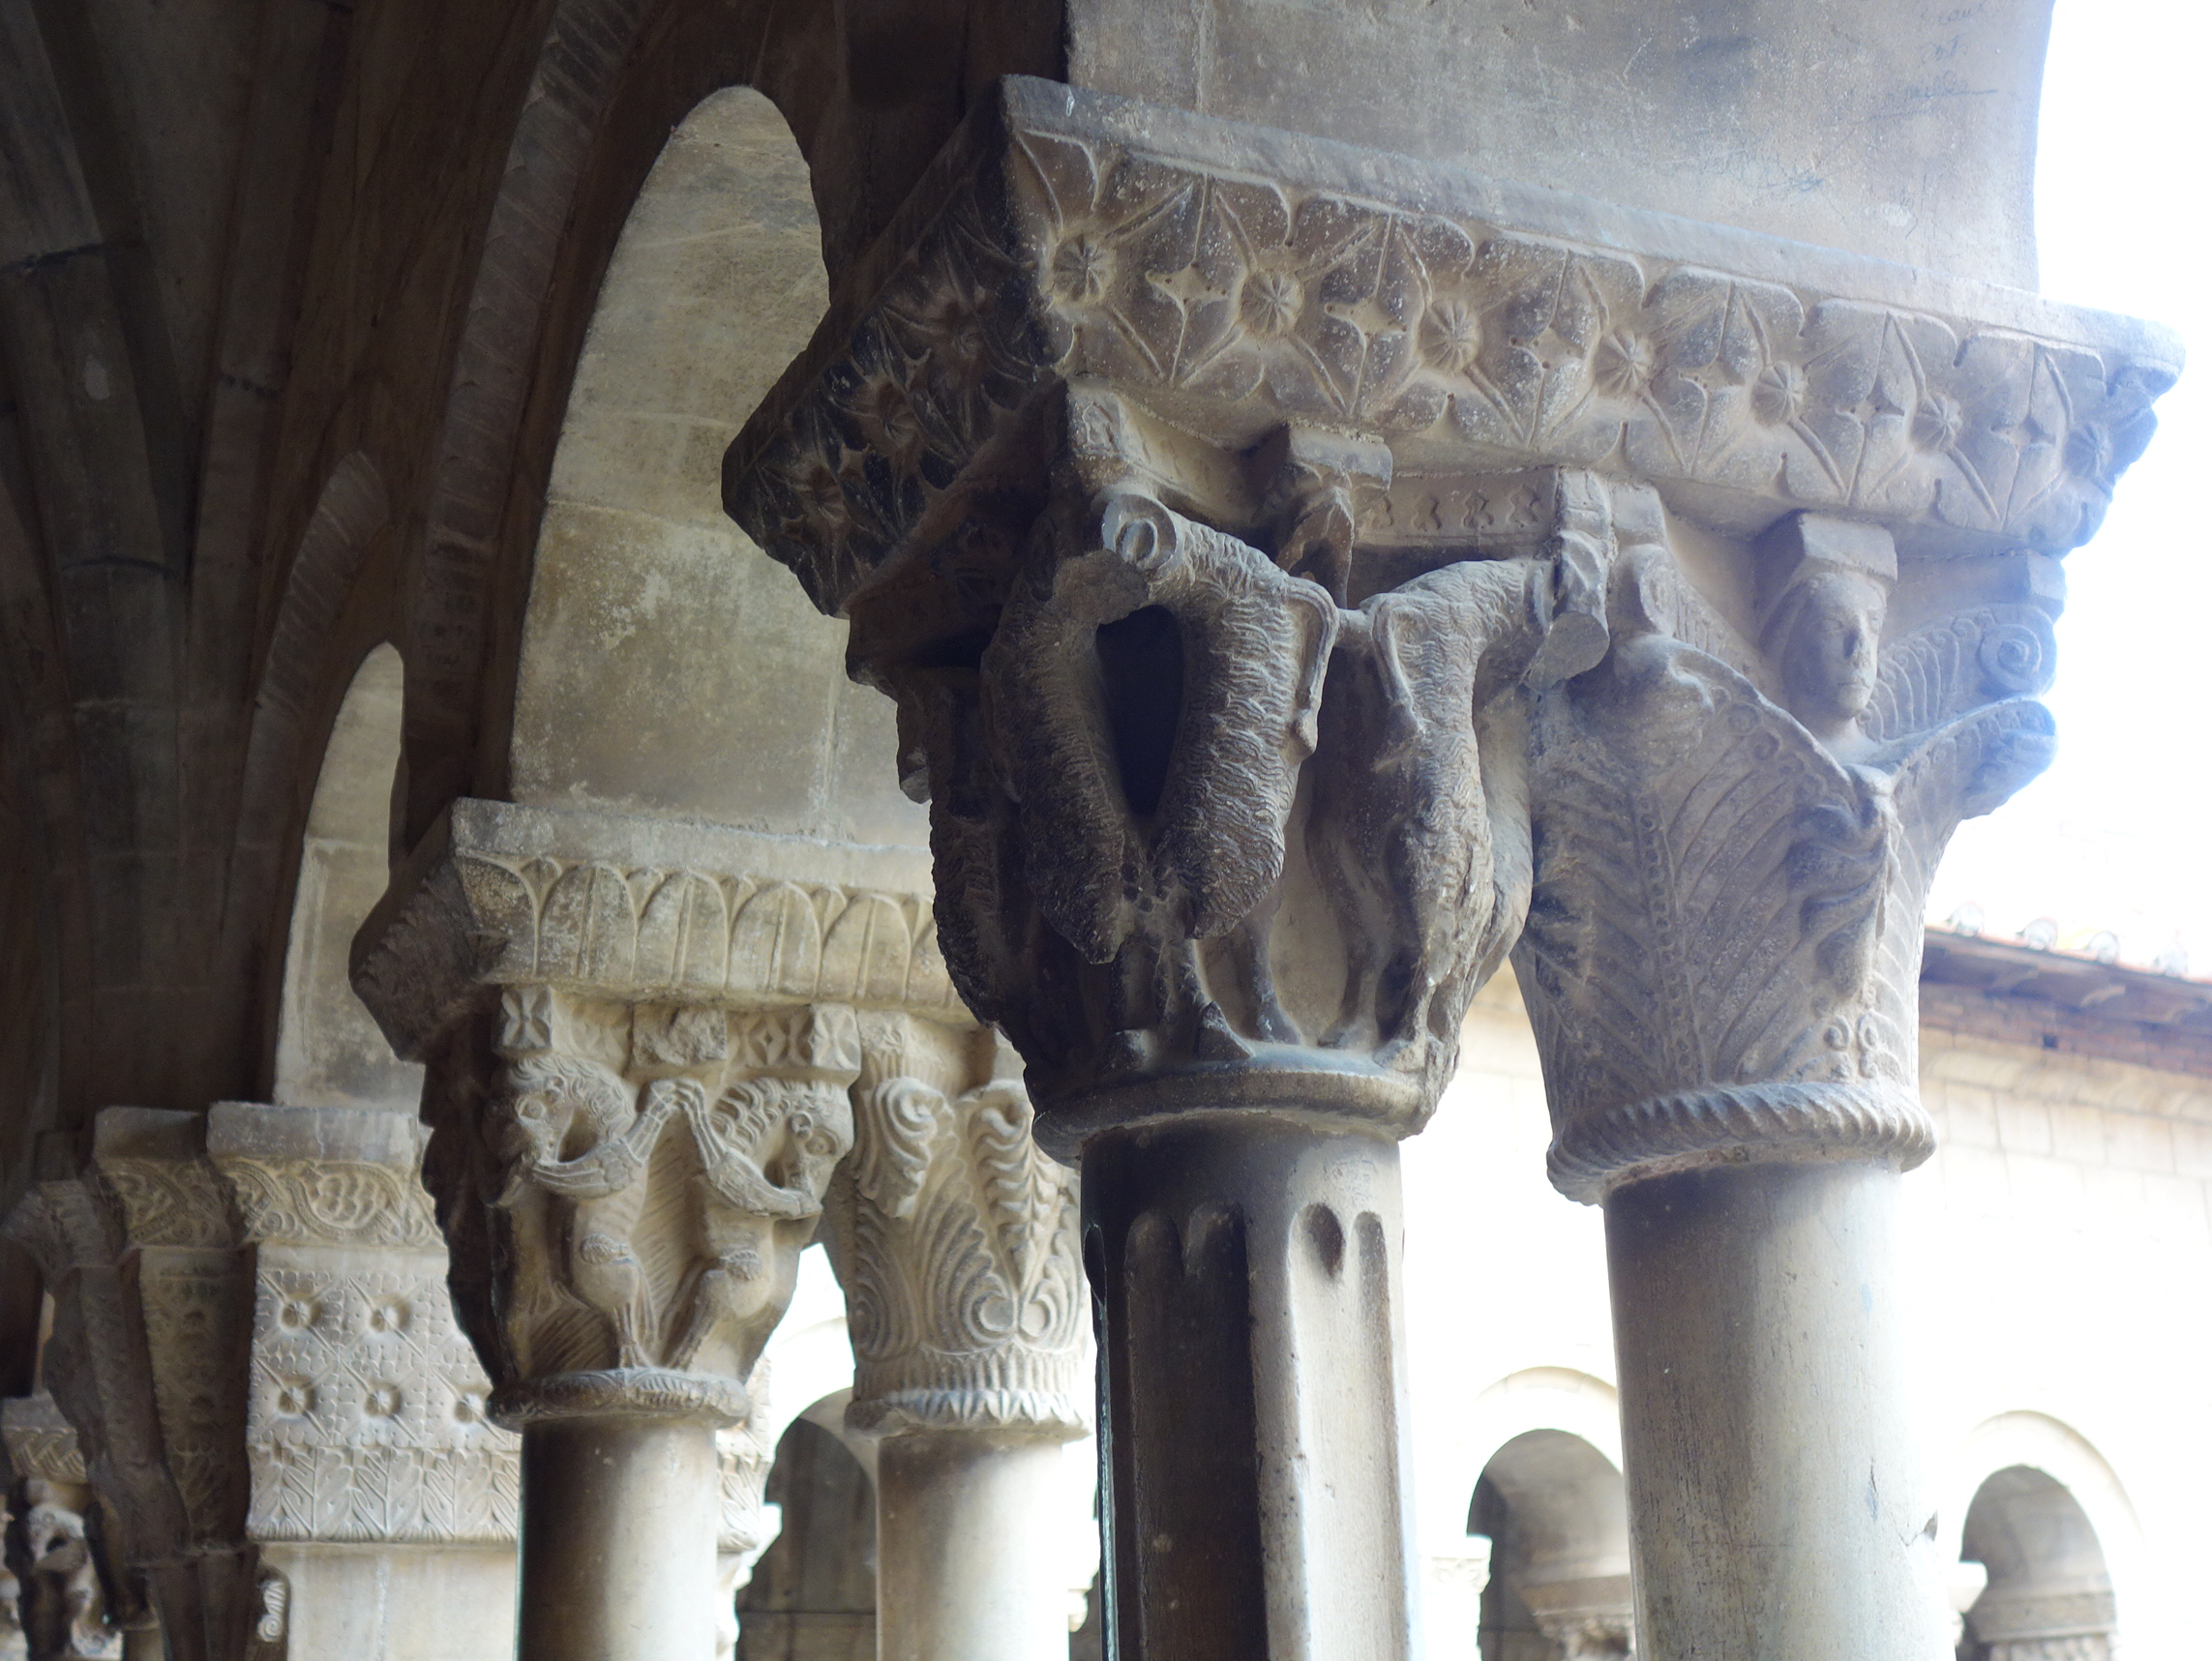 Sculptures in the Cloister, Photo: H. Maurer, 2015